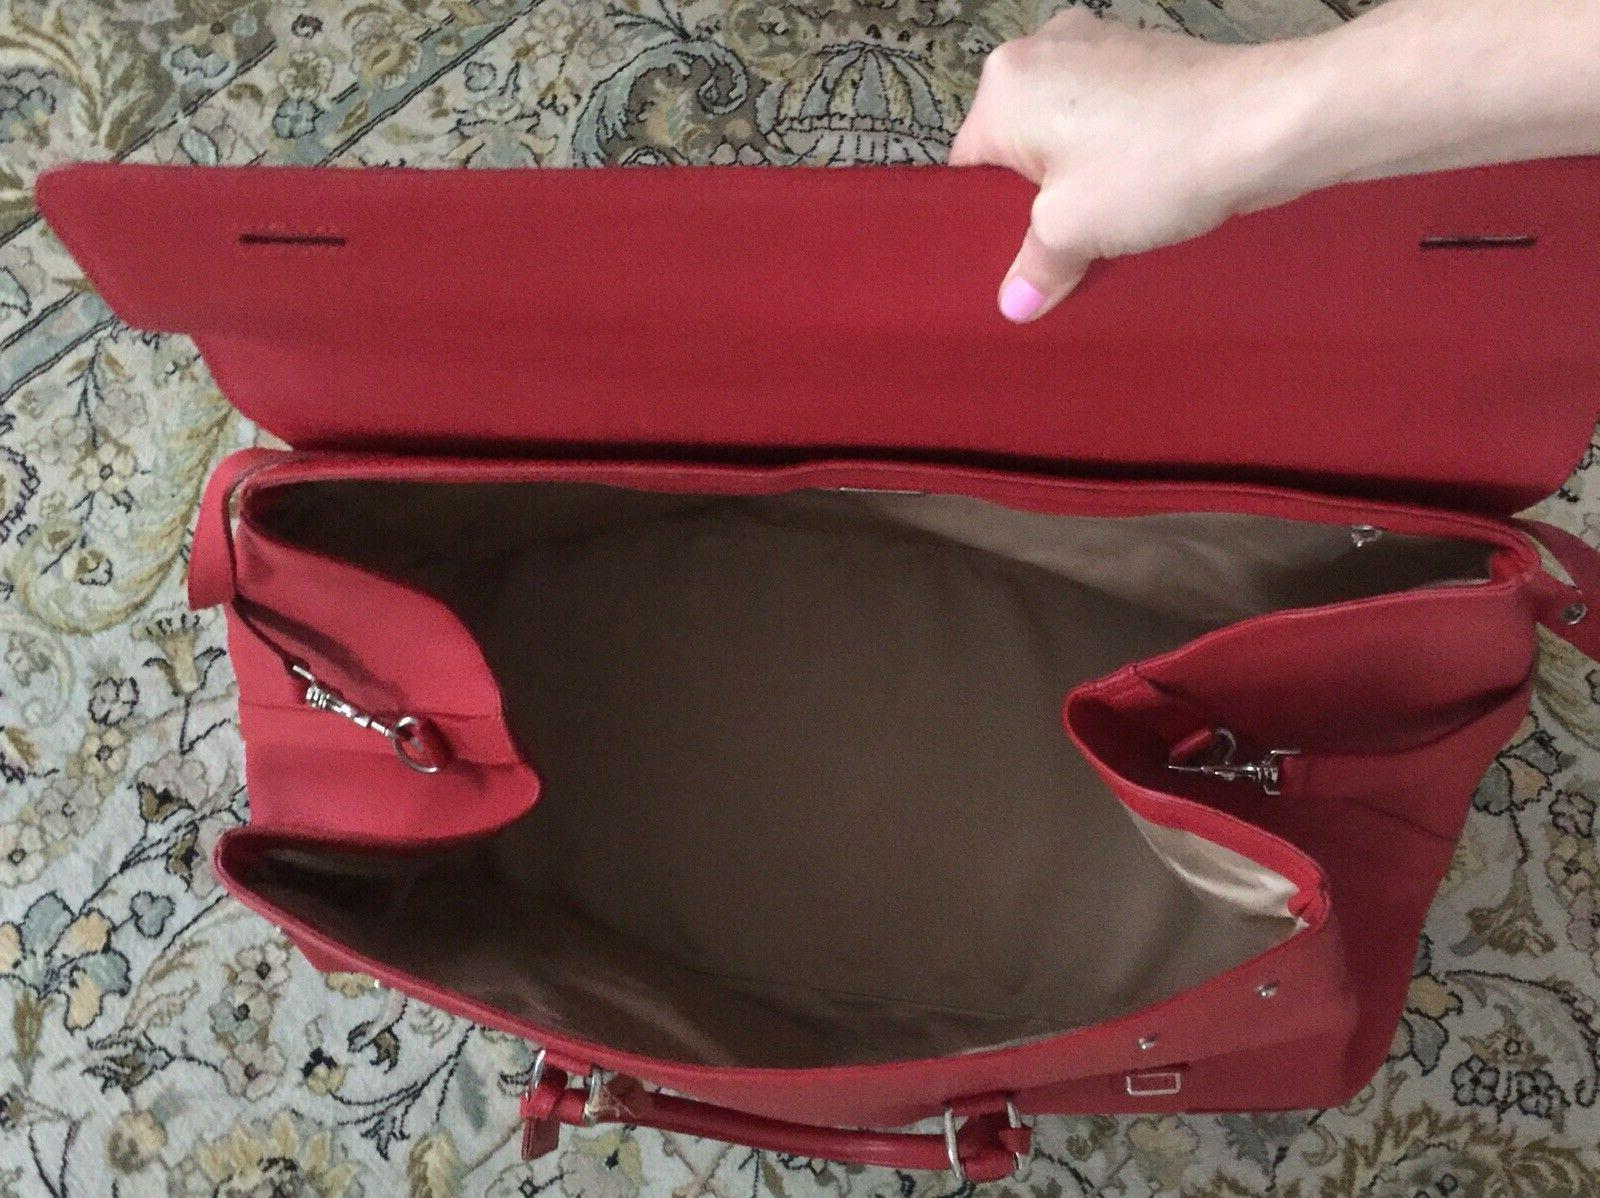 XXL Real luggage gym red vintage